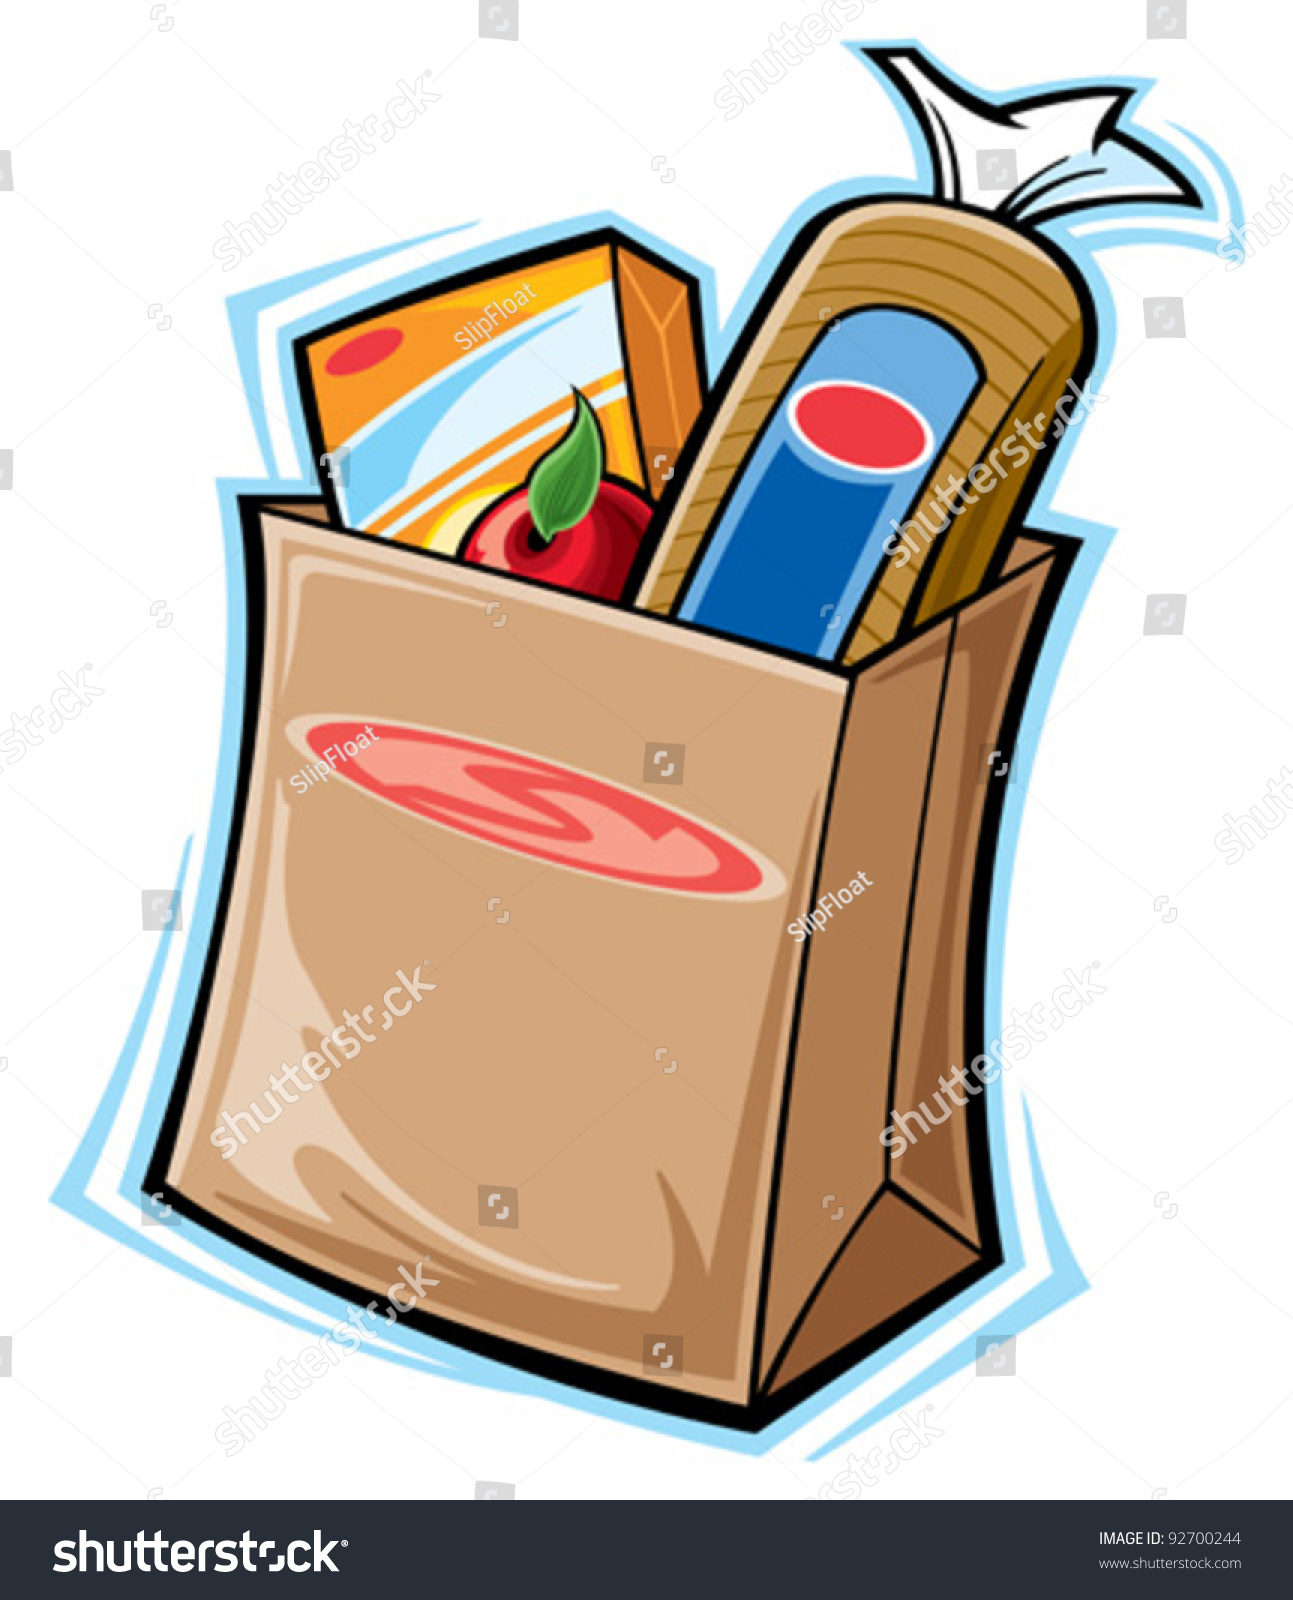 Cartoon Empty Grocery Bag Images.